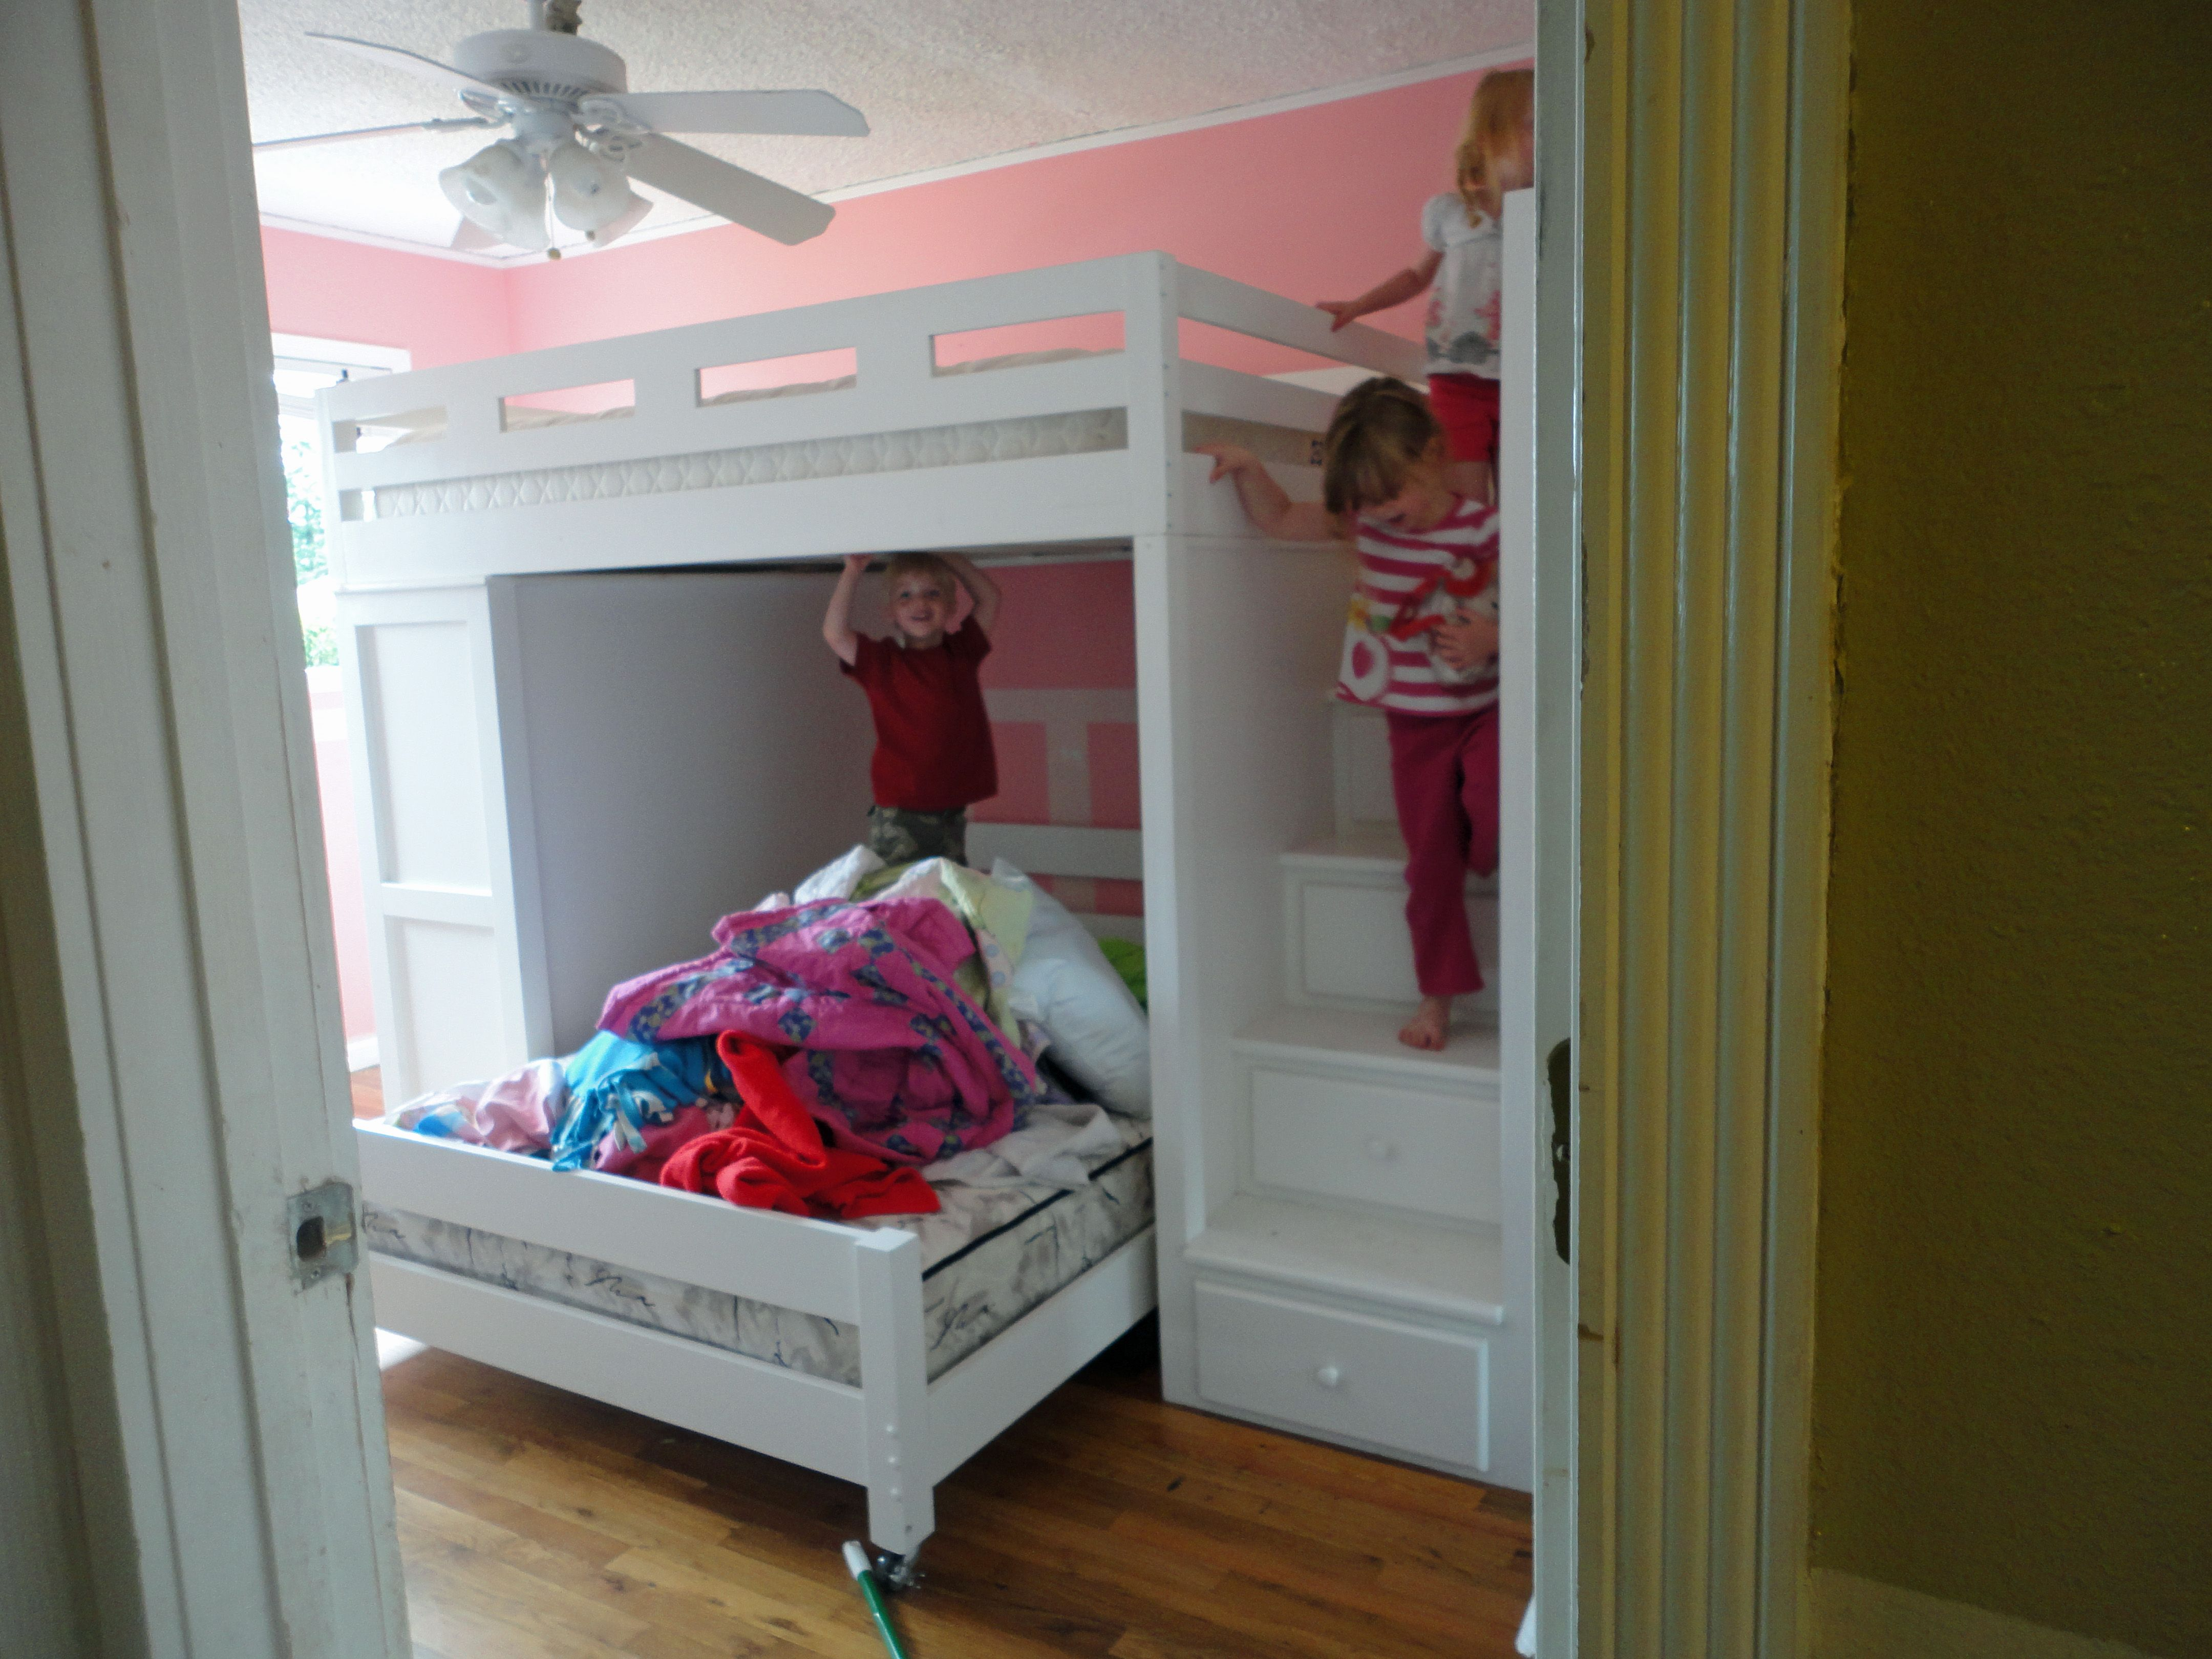 new bunk beds and new ink childrens bedroom decor diy on wonderful ideas of bunk beds for your kids bedroom id=34684